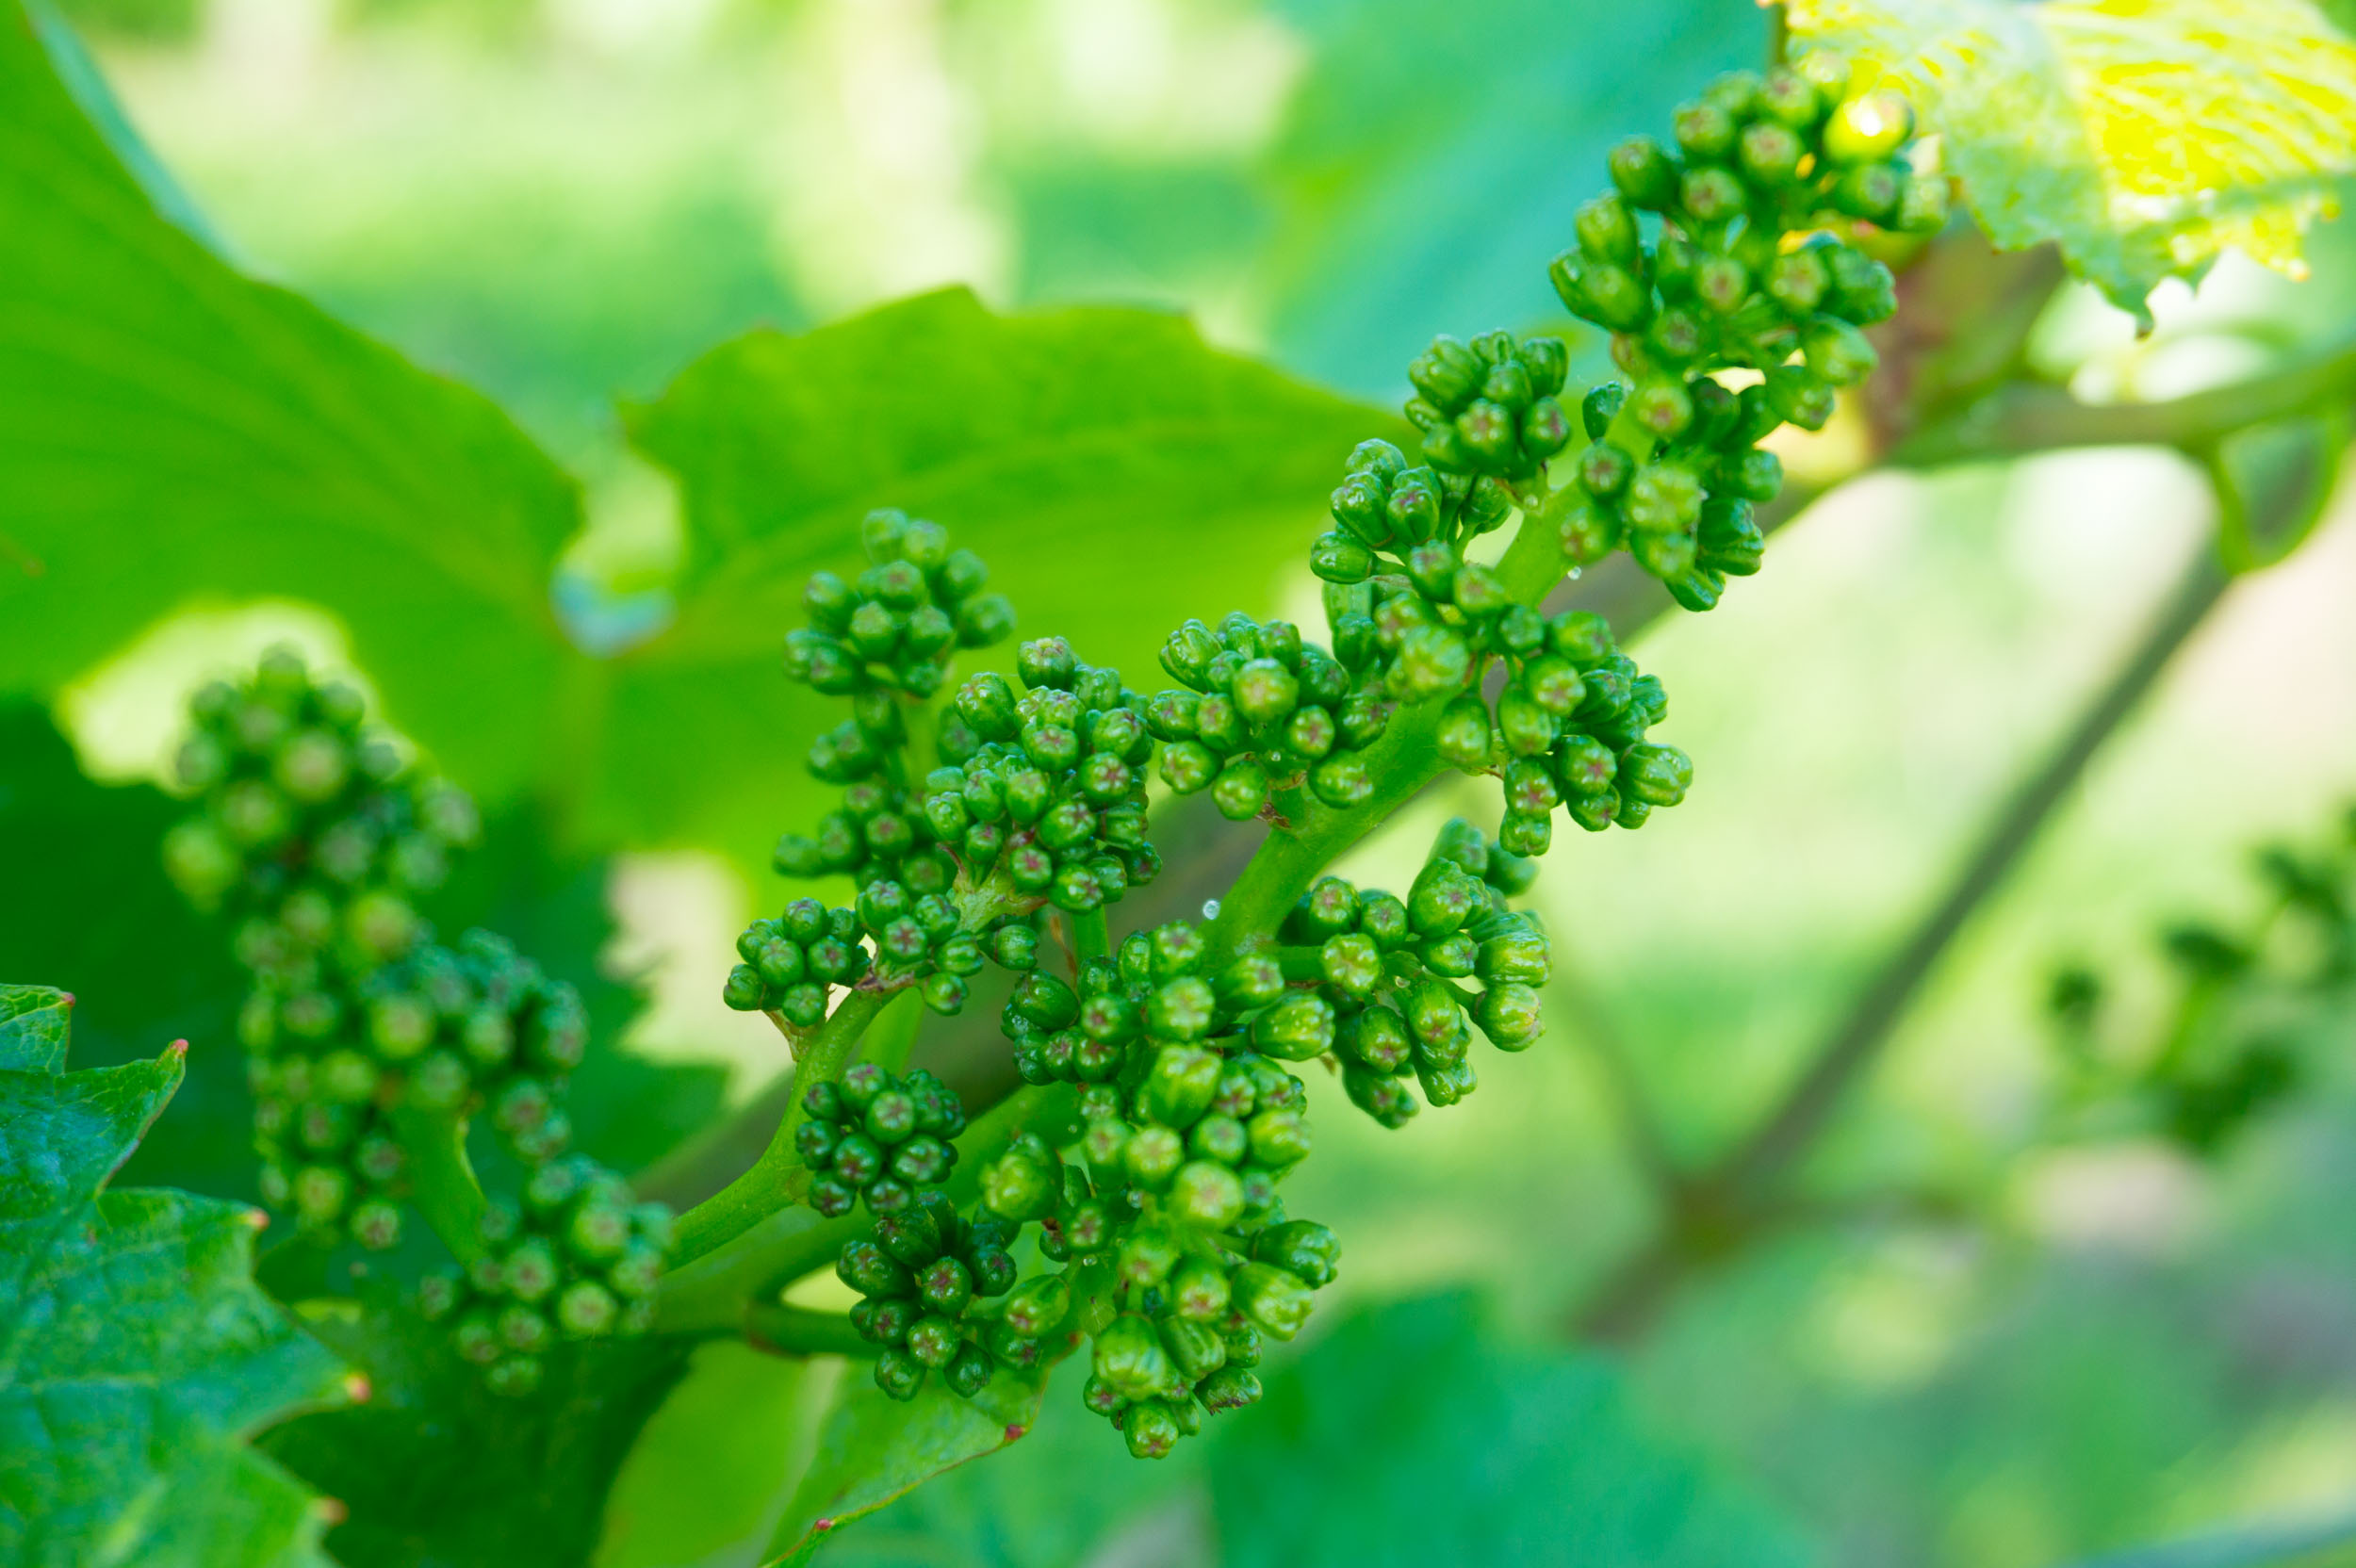 Meopham-Valley-Vineyard-Grapes-Vines-Flowering-3